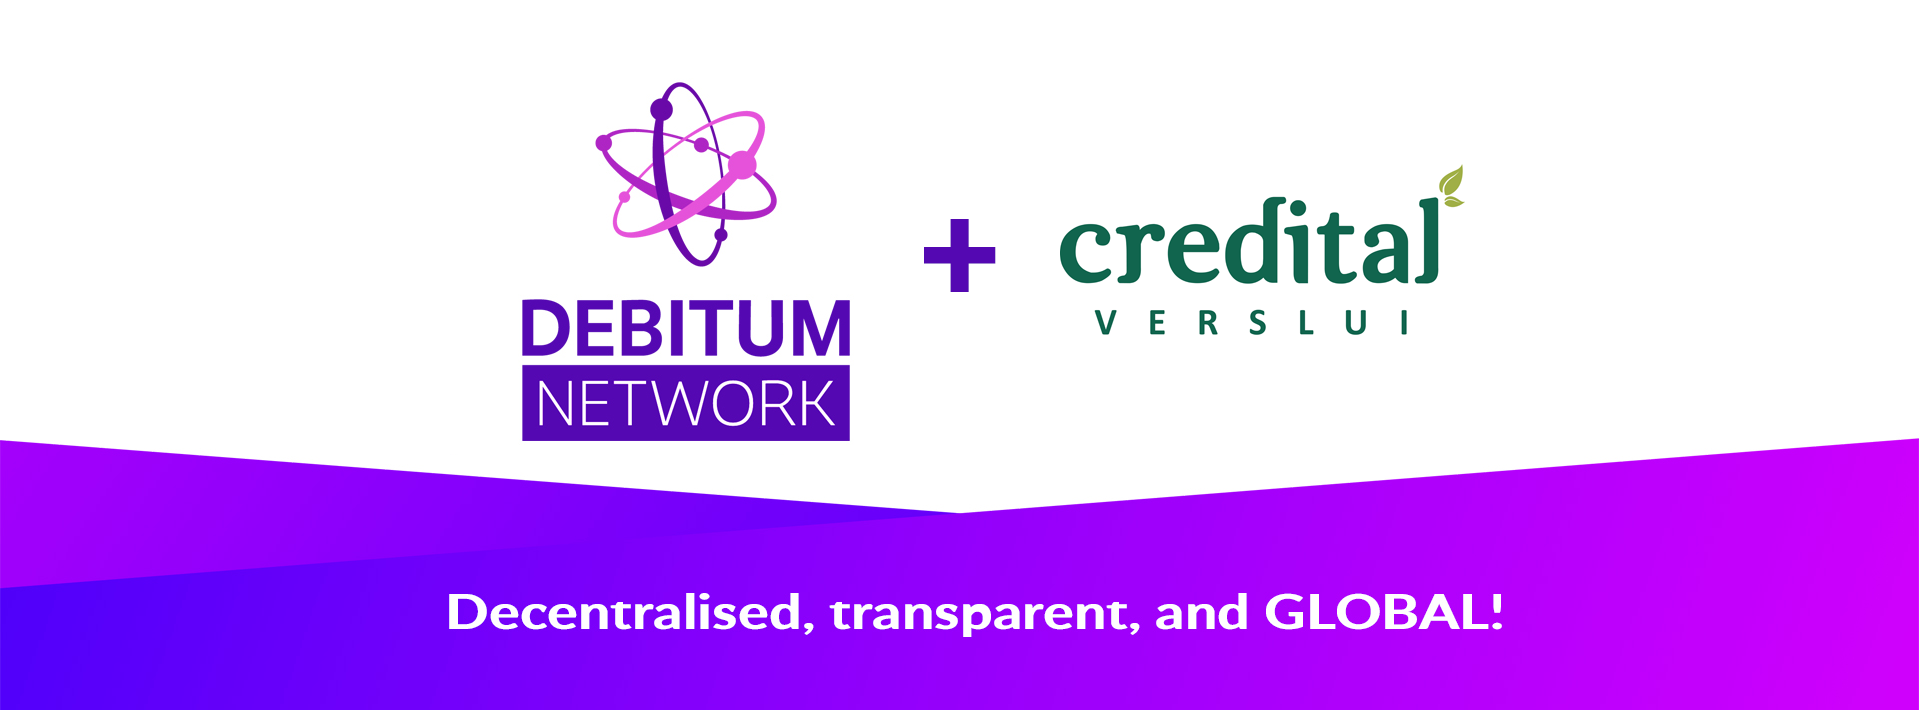 Debitum Network on-boards Credital